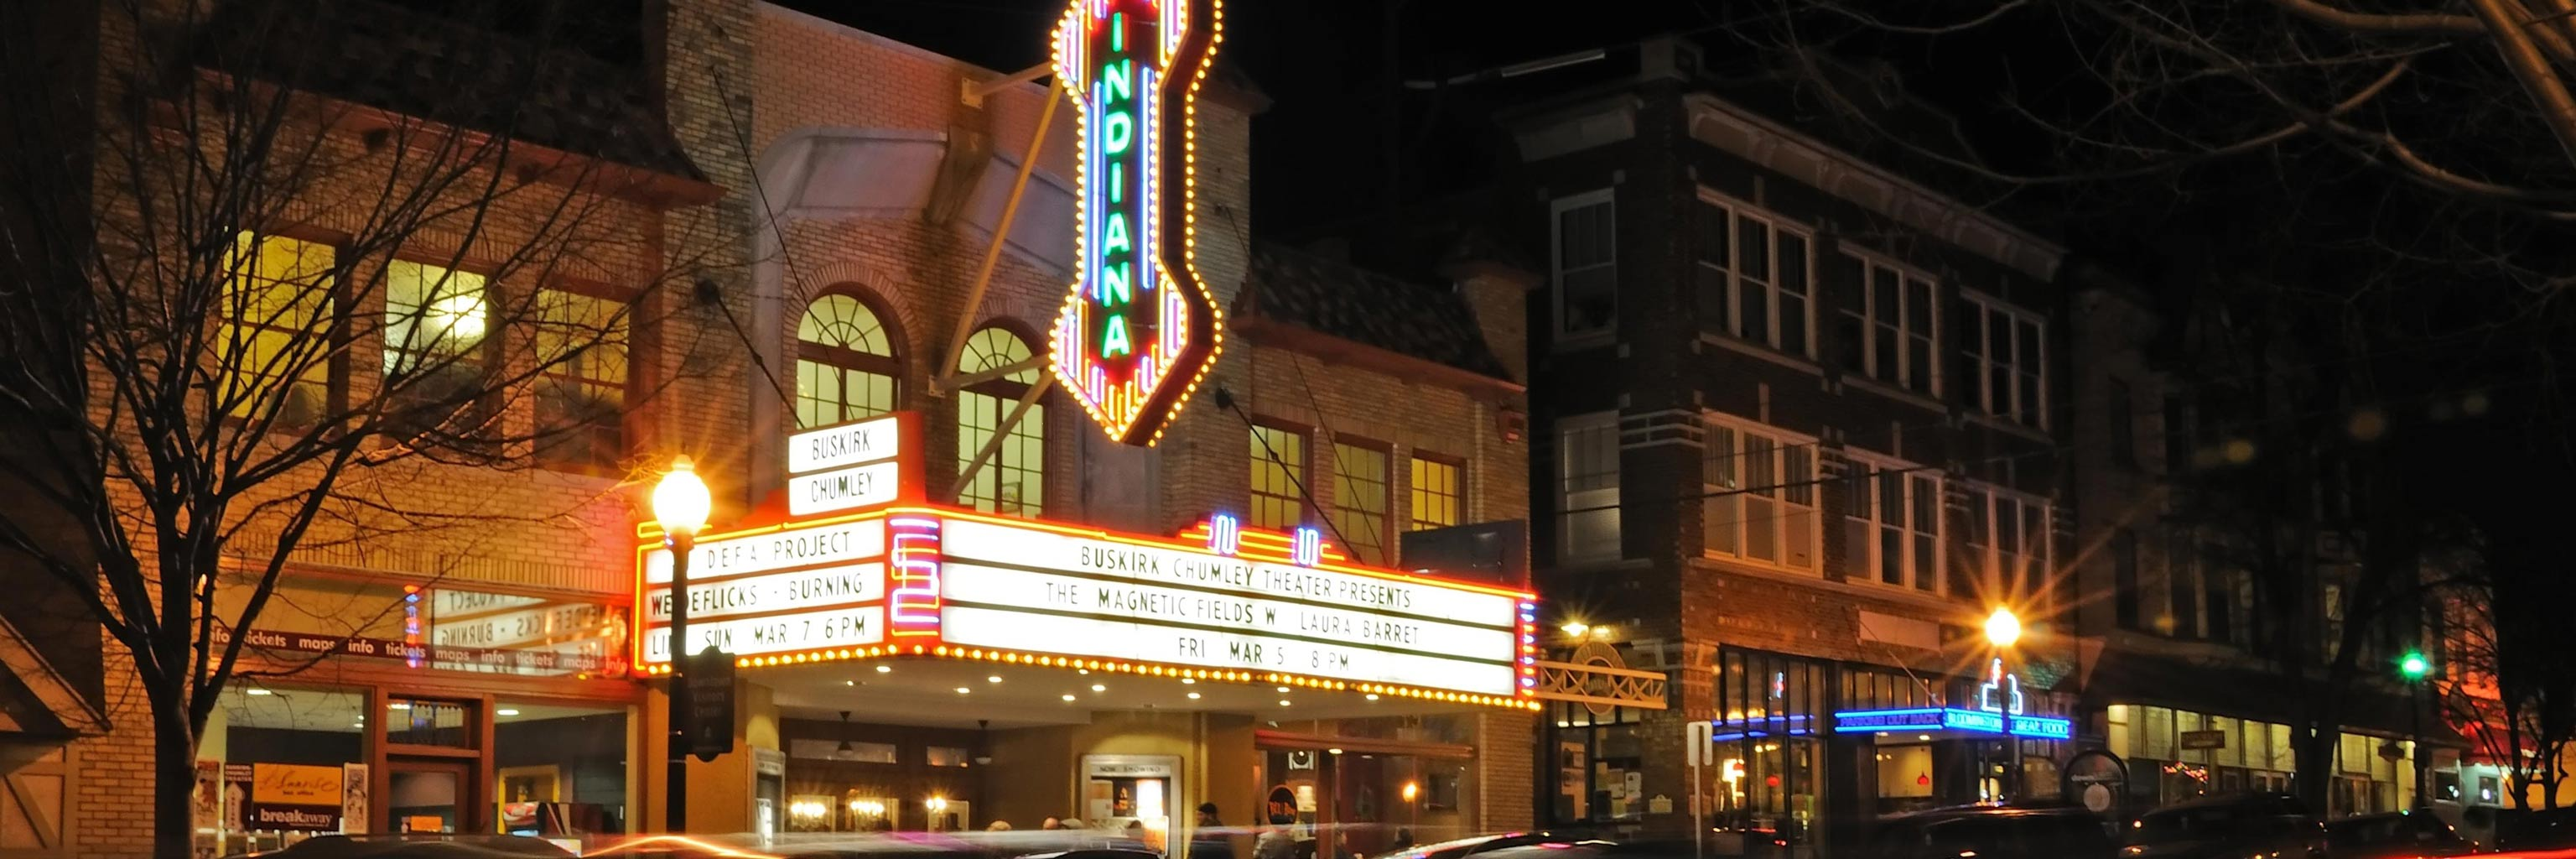 Indiana Theatre building with neon lights